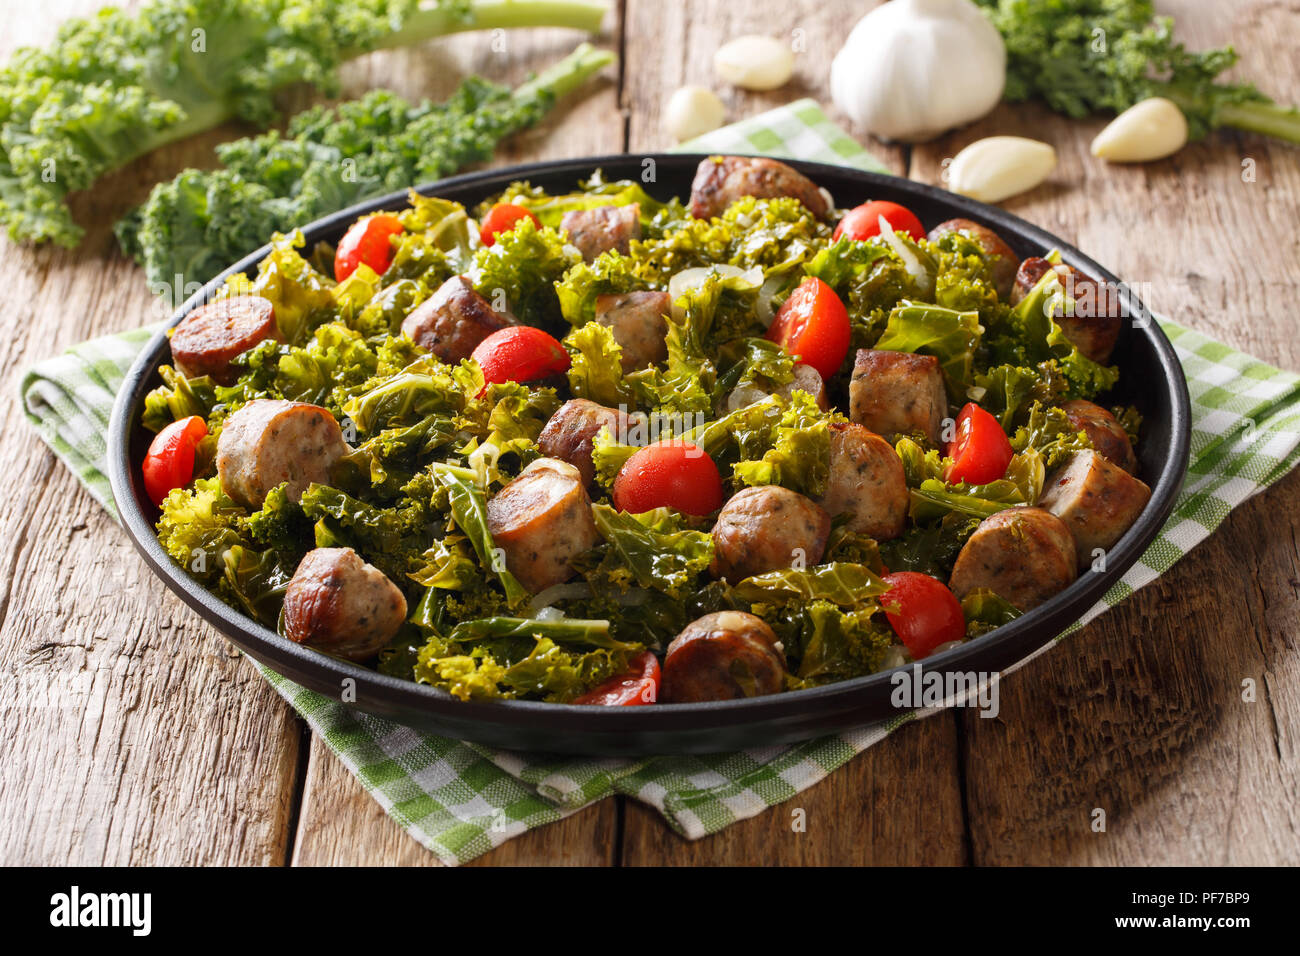 kale with grilled sausages, fresh tomatoes and garlic close-up on a plate on a table. horizontal - Stock Image